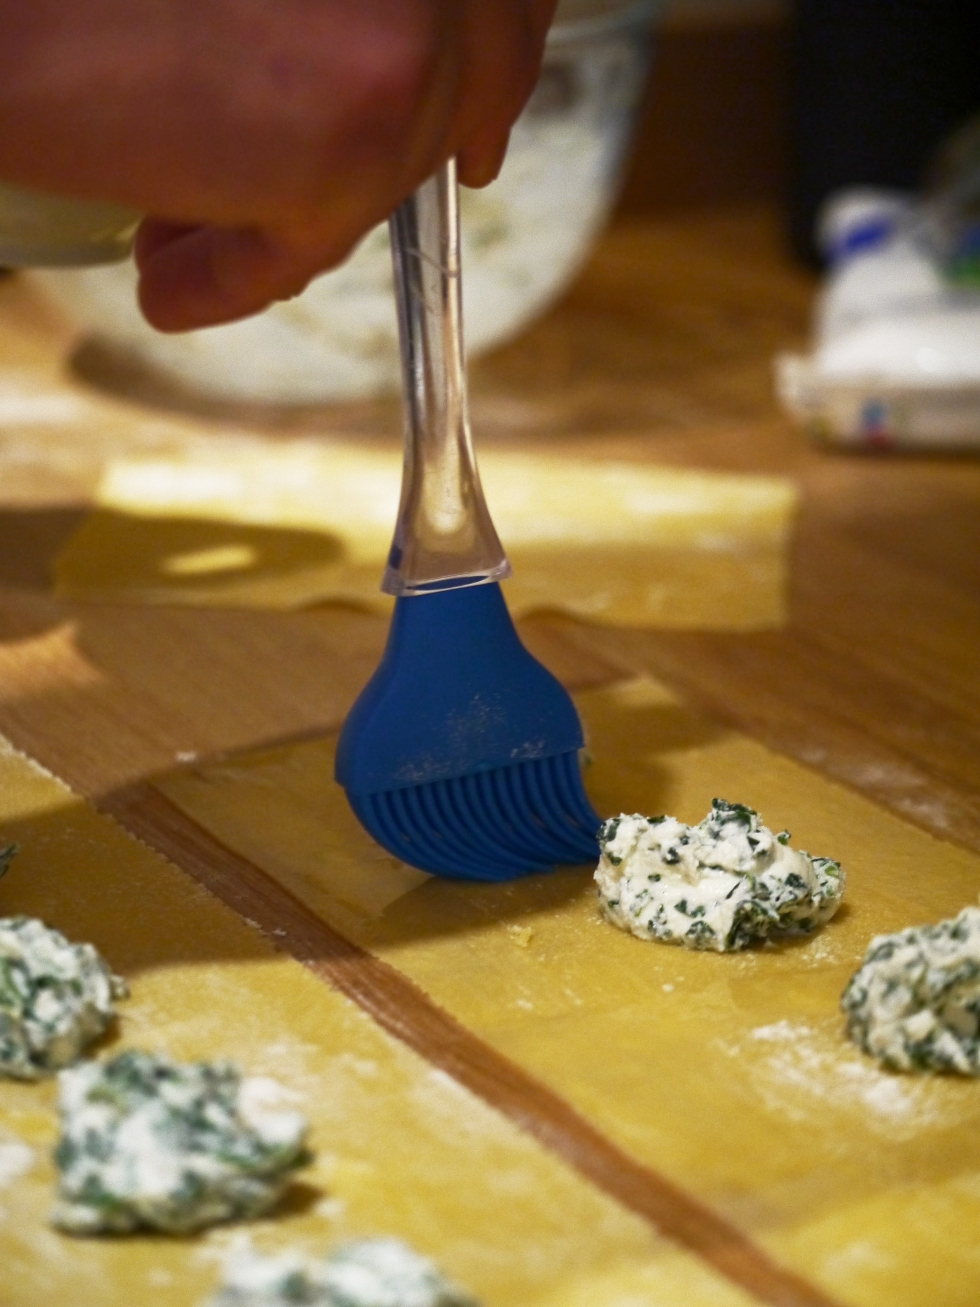 spinach-ricotta-and-pine-nut-ravioli-26-butterwouldntmelt-com